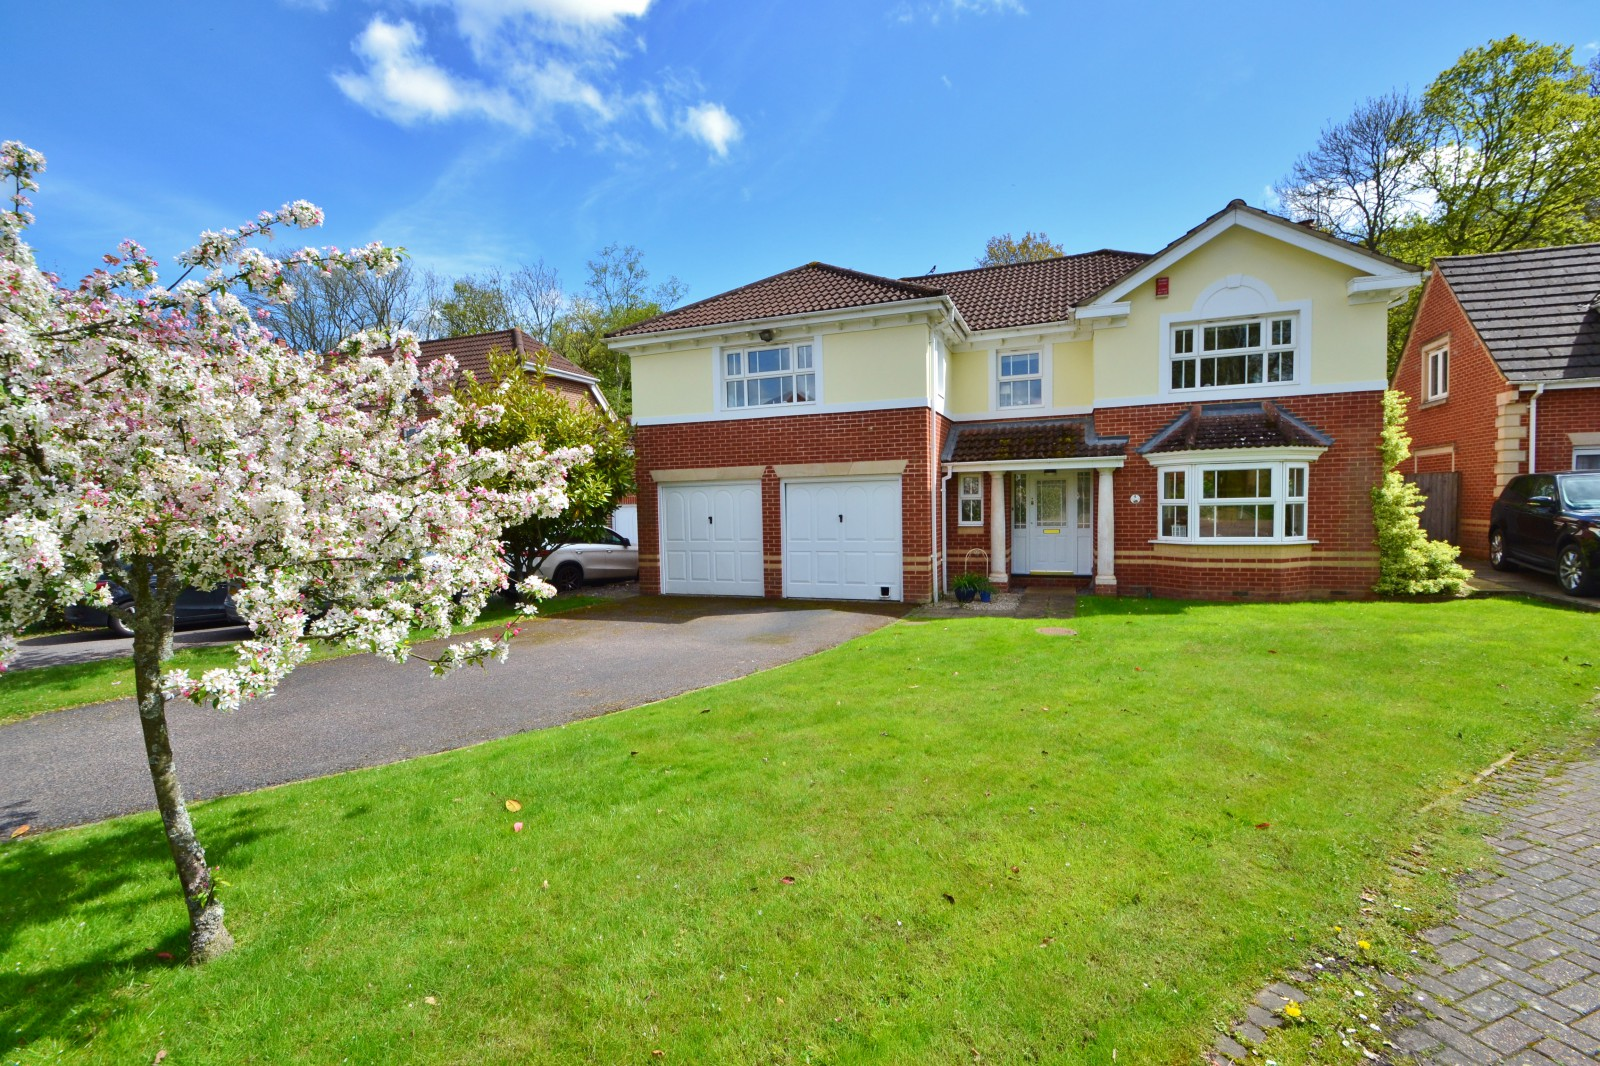 Hornbeam Road, Knightwood, Chandler's Ford SO53 4PA